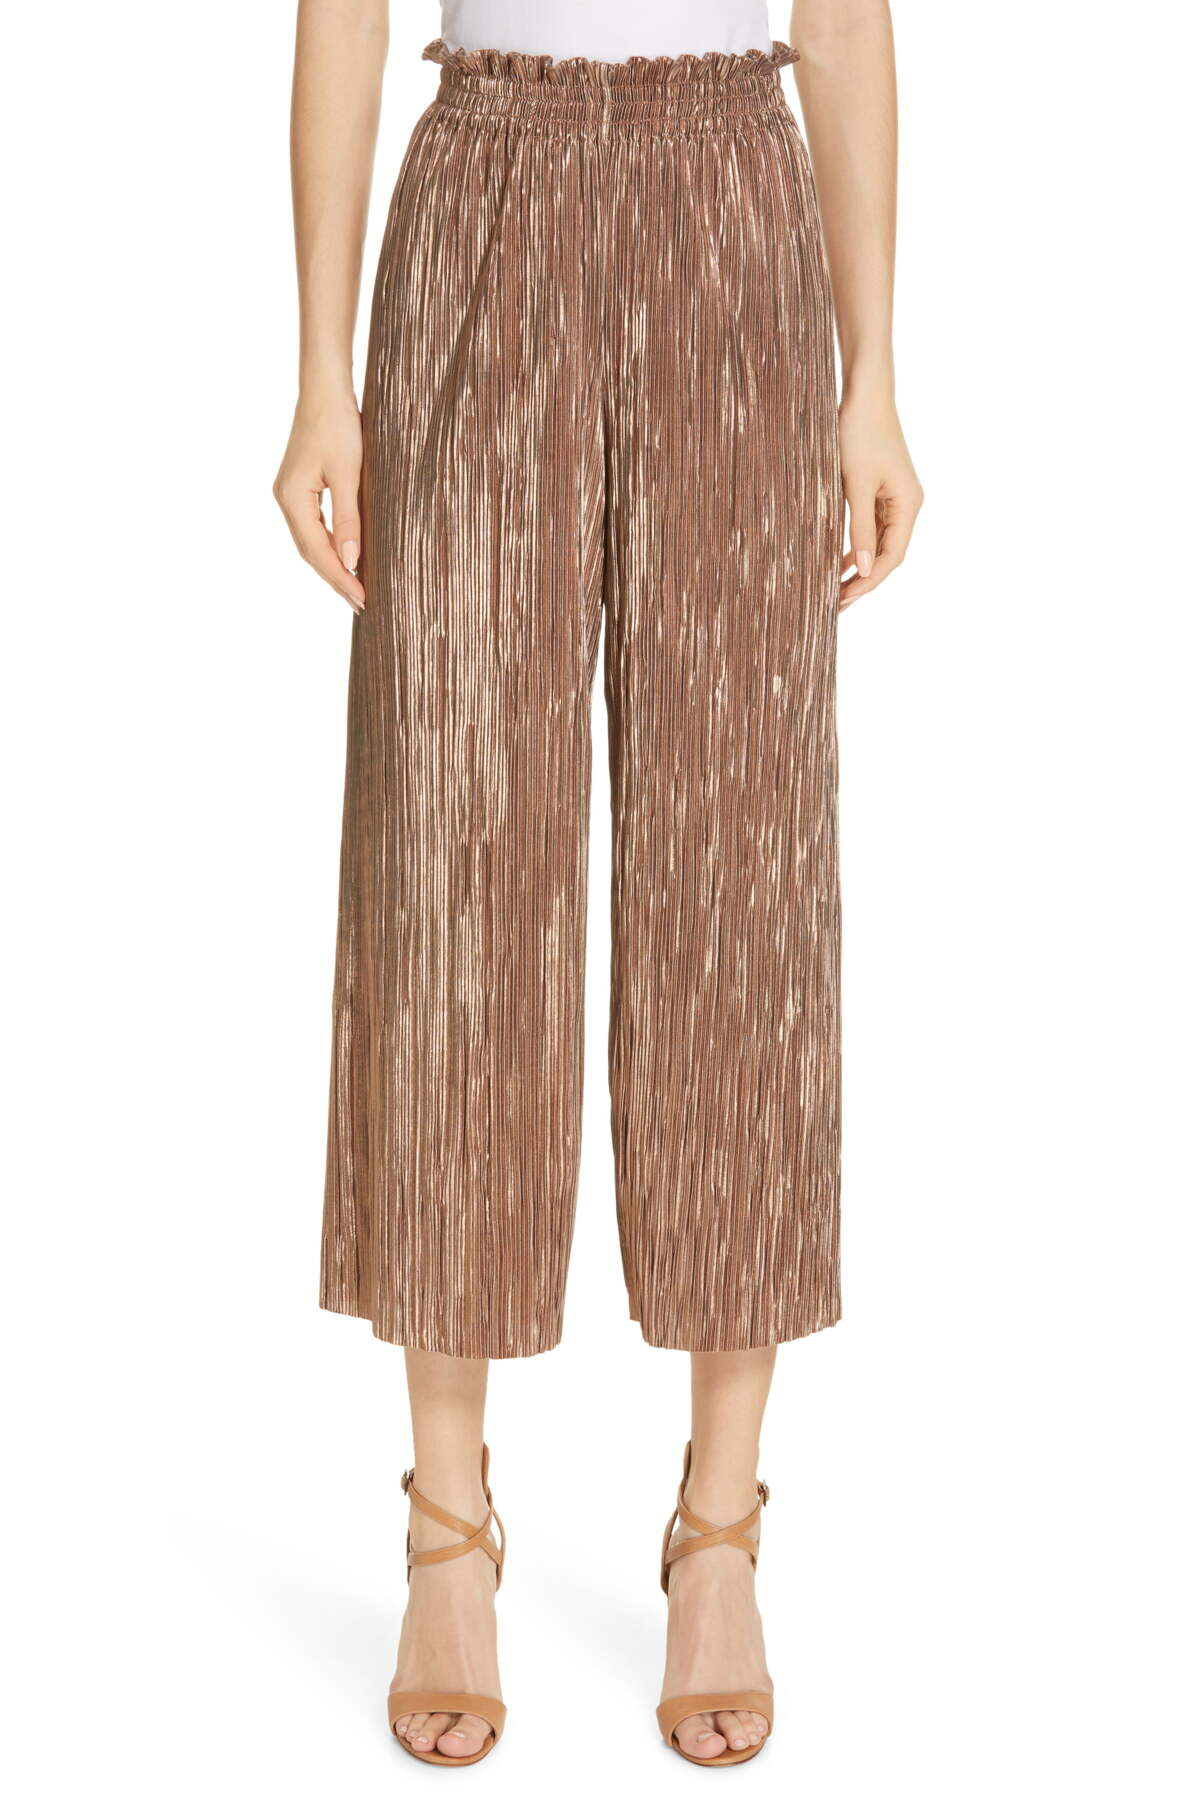 "Alice & Olivia Elba Paper Bag Pants, copper size XS, Orig. rtl: $225<br /> <br /> ""When quick-and-easy and chic-and-sophisticated are neck-and-neck as you contemplate what to wear, these cropped pants settle the score. Go with tucked-in to show off the paperbag waist, and rejoice in how well the striated metallic tone works with so many pairing options.<br /> - 23"" inseam; 26"" leg opening; 13"" front rise; 17 1/2"" back rise (size Medium)<br /> - Pull-on style with smocked waist<br /> - 100% polyester<br /> - Dry clean""<br /> <br /> Photo and description credits: shopbop.com"